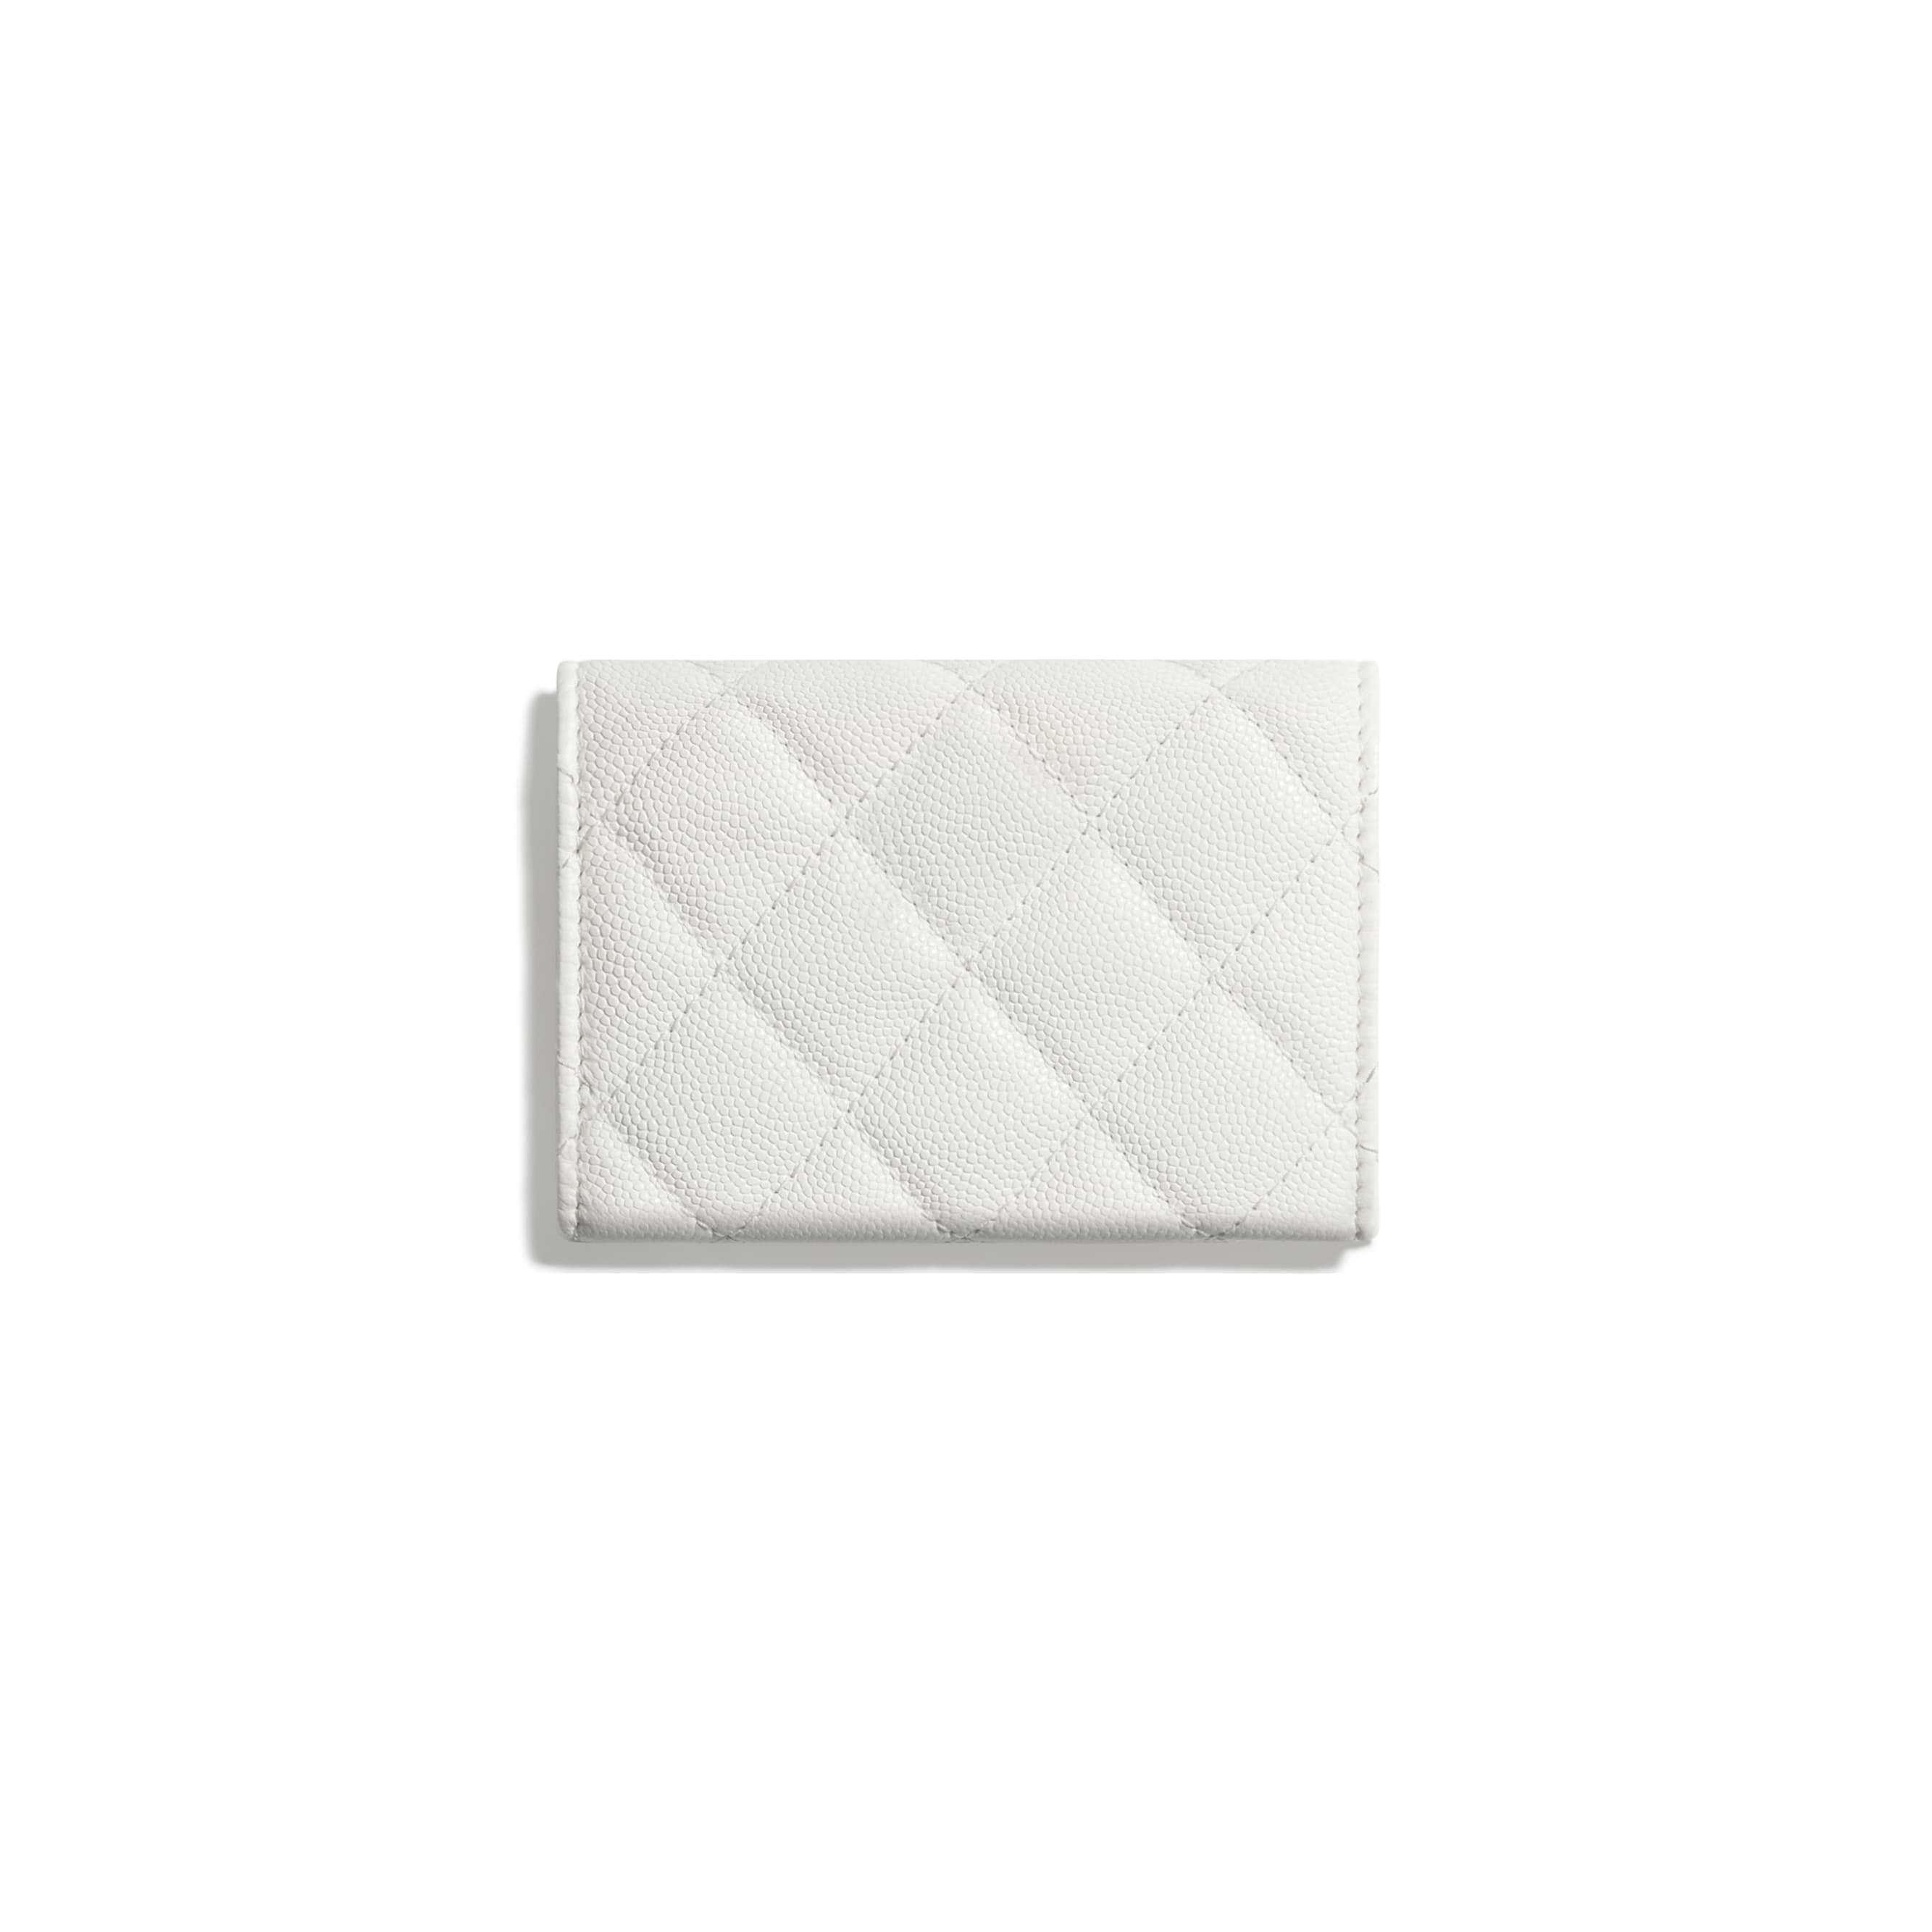 Small Flap Wallet - White - Shiny Grained Calfskin, Gold-Tone & Lacquered Metal  - CHANEL - Alternative view - see standard sized version